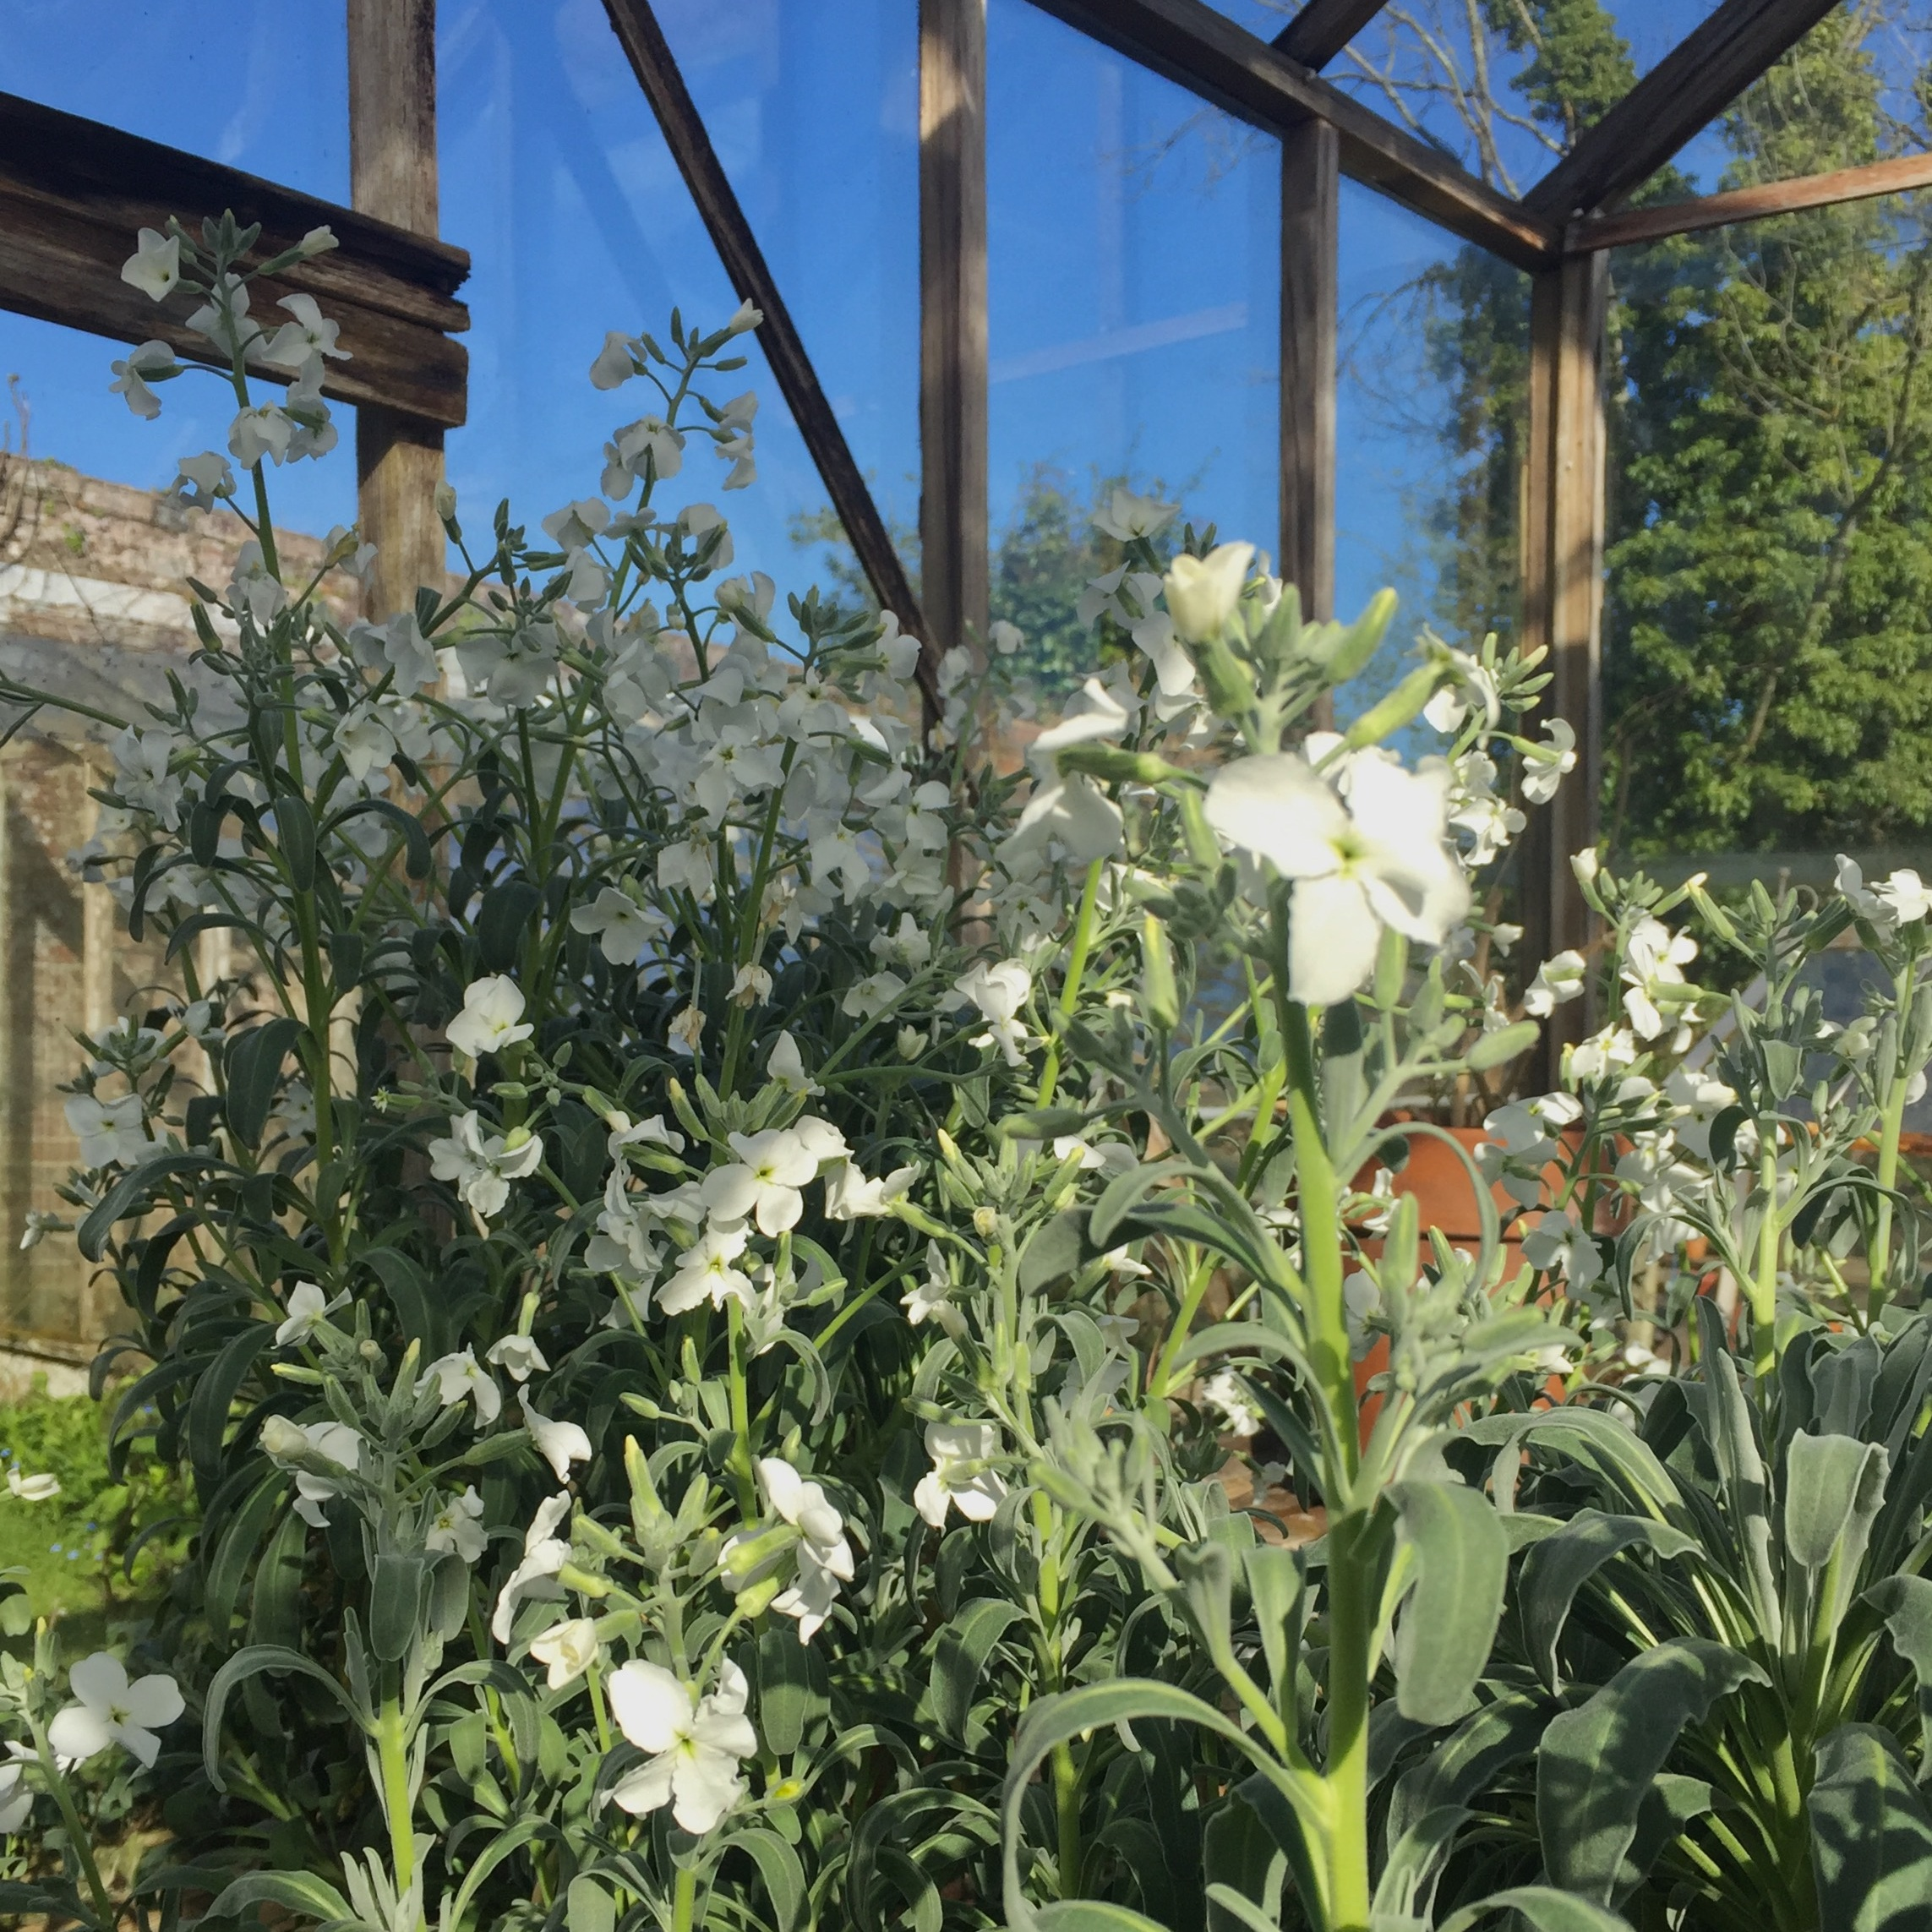 The Stocks in my greenhouse fill it with scent - fabulous!